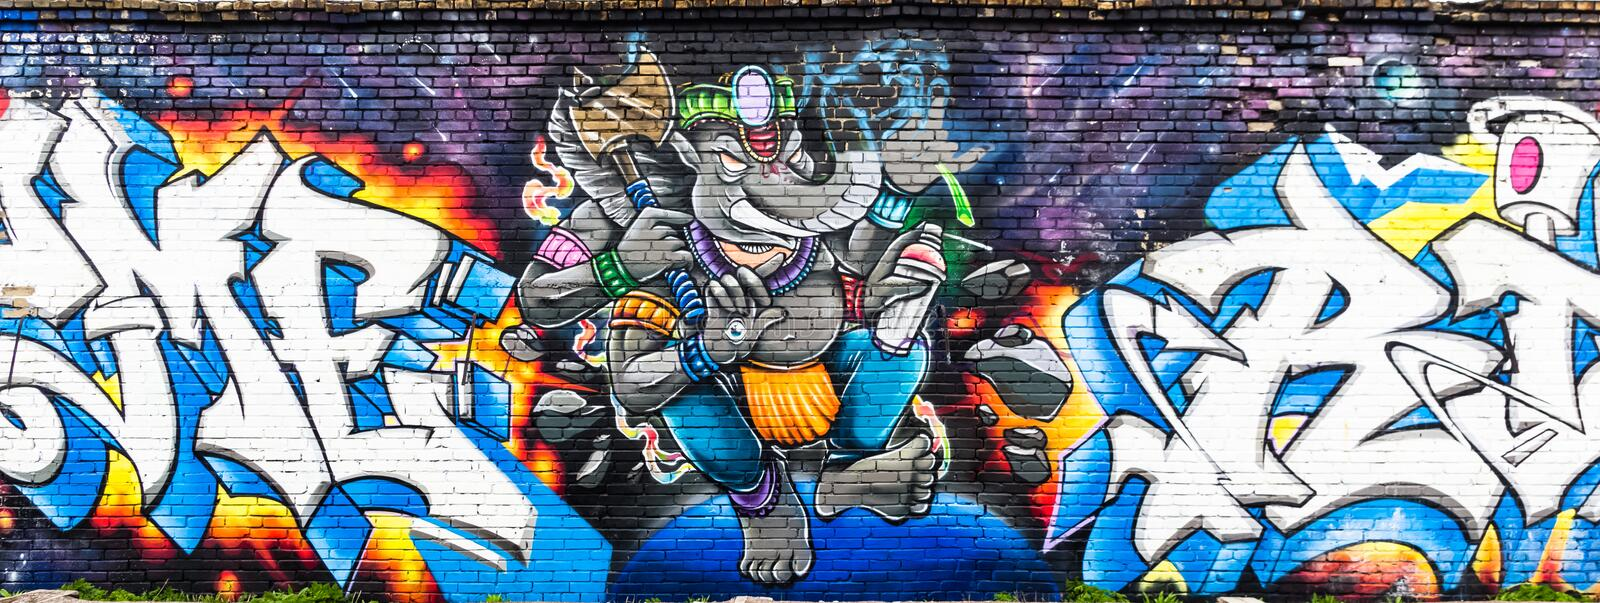 Colorful elephant street art mural on the wall in Tallinn, Estonia royalty free stock images